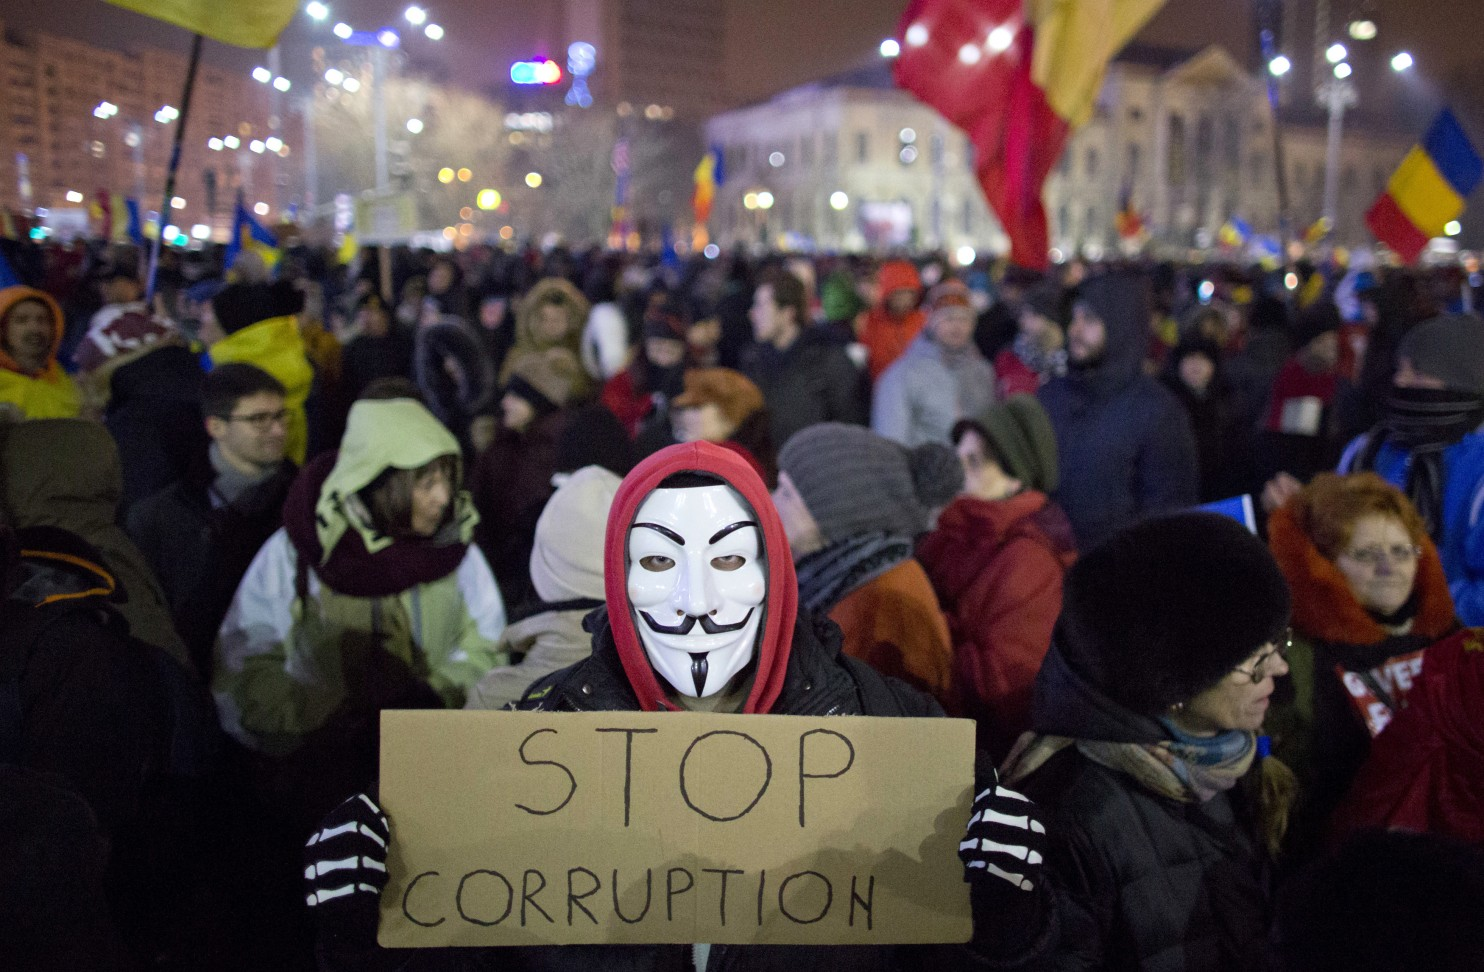 corruption in romania A database query tool is available to help you better understand the prevalence of corruption across various firm  romania (2013) 98: 61: 68: 71: 05: 58.